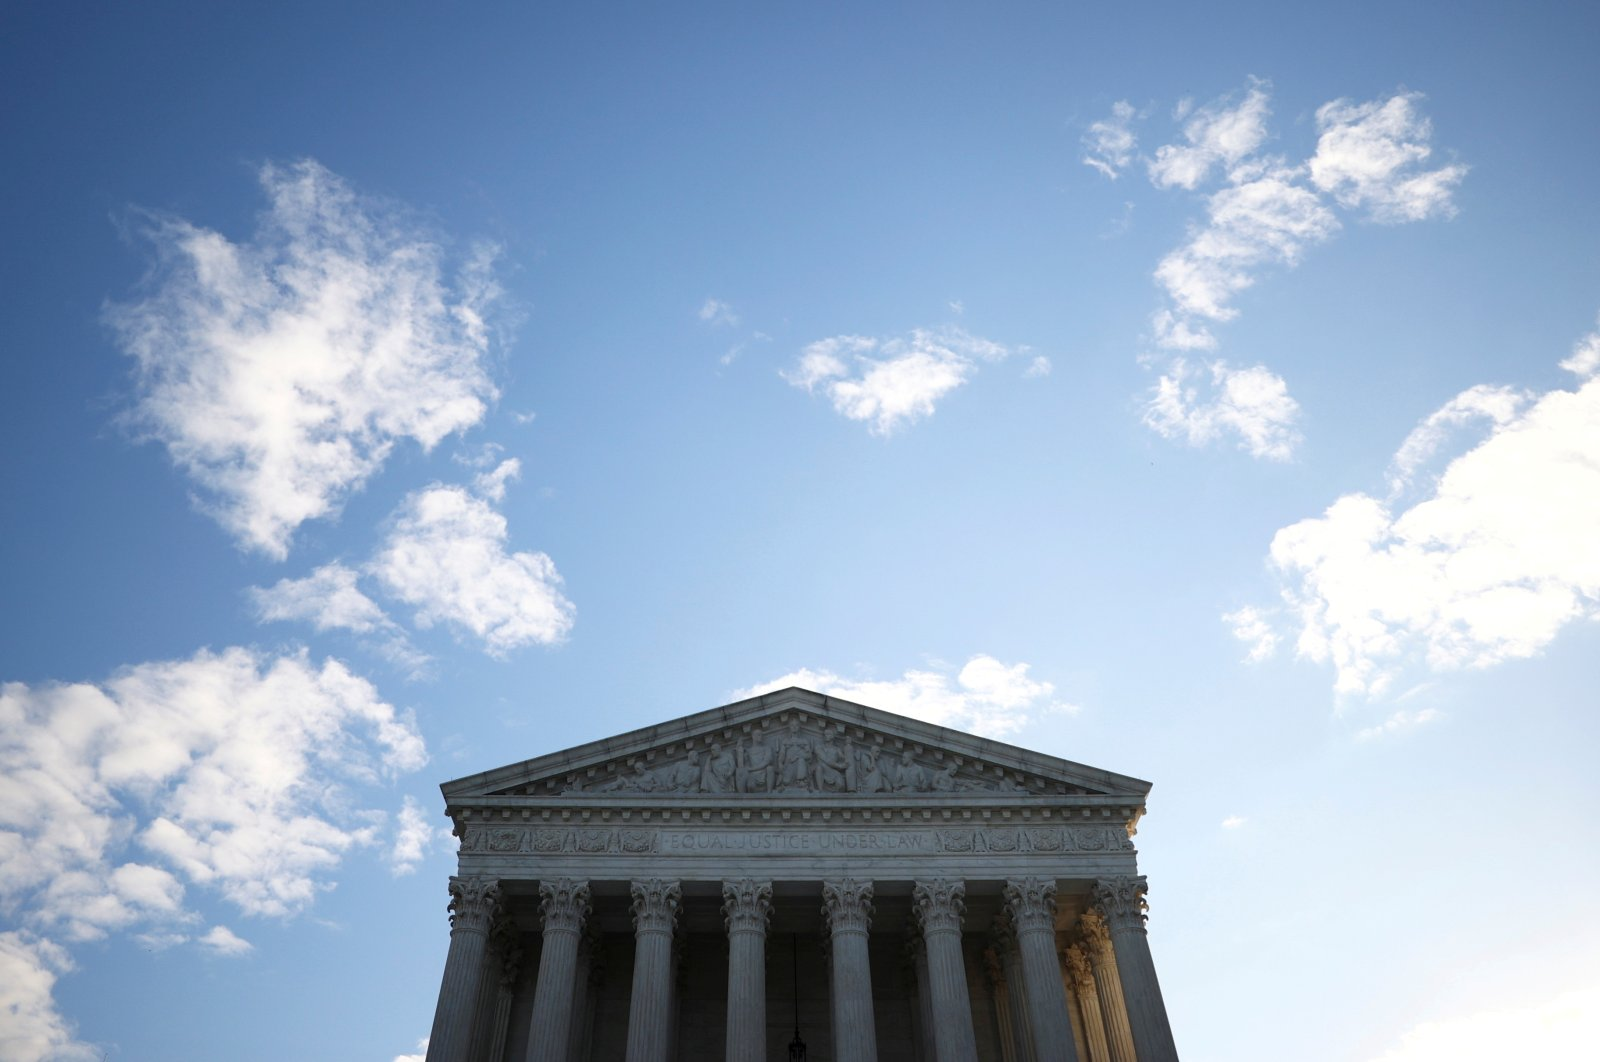 A general view of the U.S. Supreme Court building in Washington, U.S., Nov. 10, 2020. (Reuters Photo)